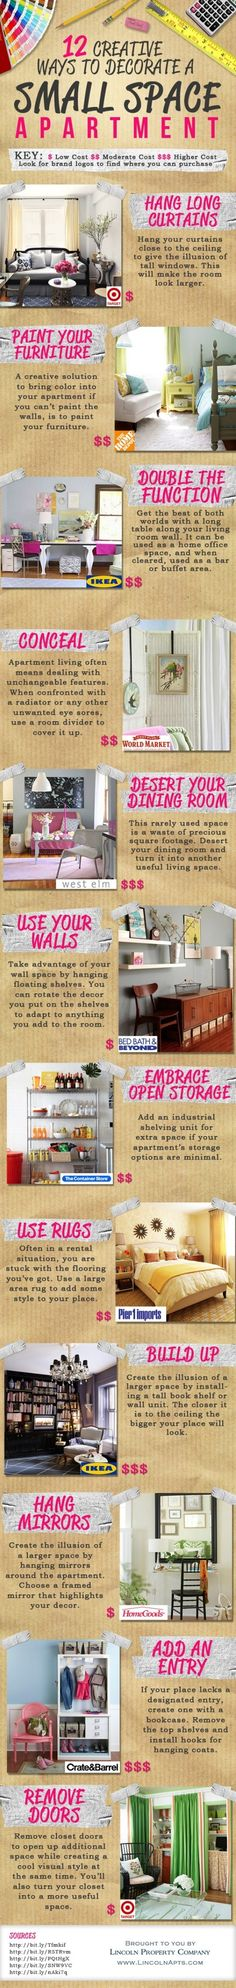 12 Creative Ways to Decorate a Small Space!